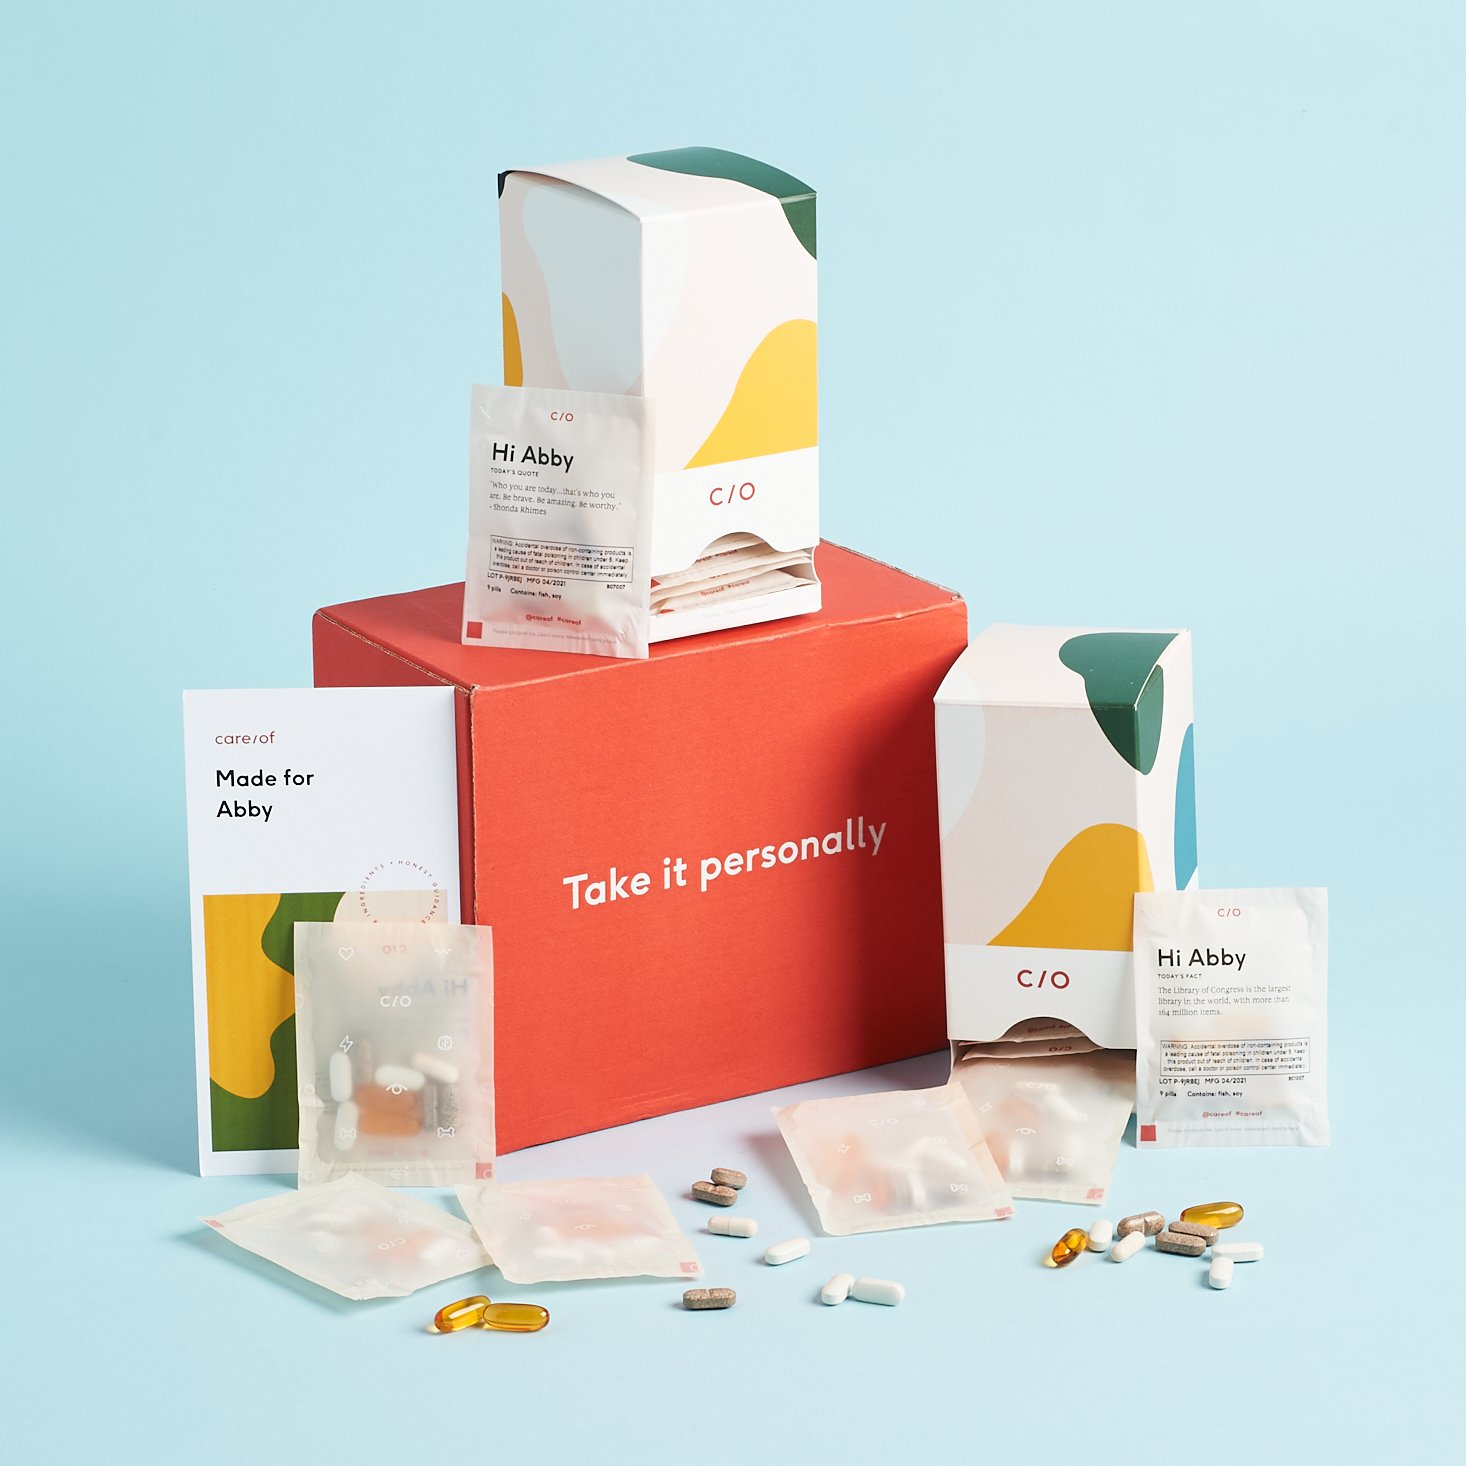 My Care/of Supplement Review – Personalized Vitamins and Minerals To Match Your Lifestyle